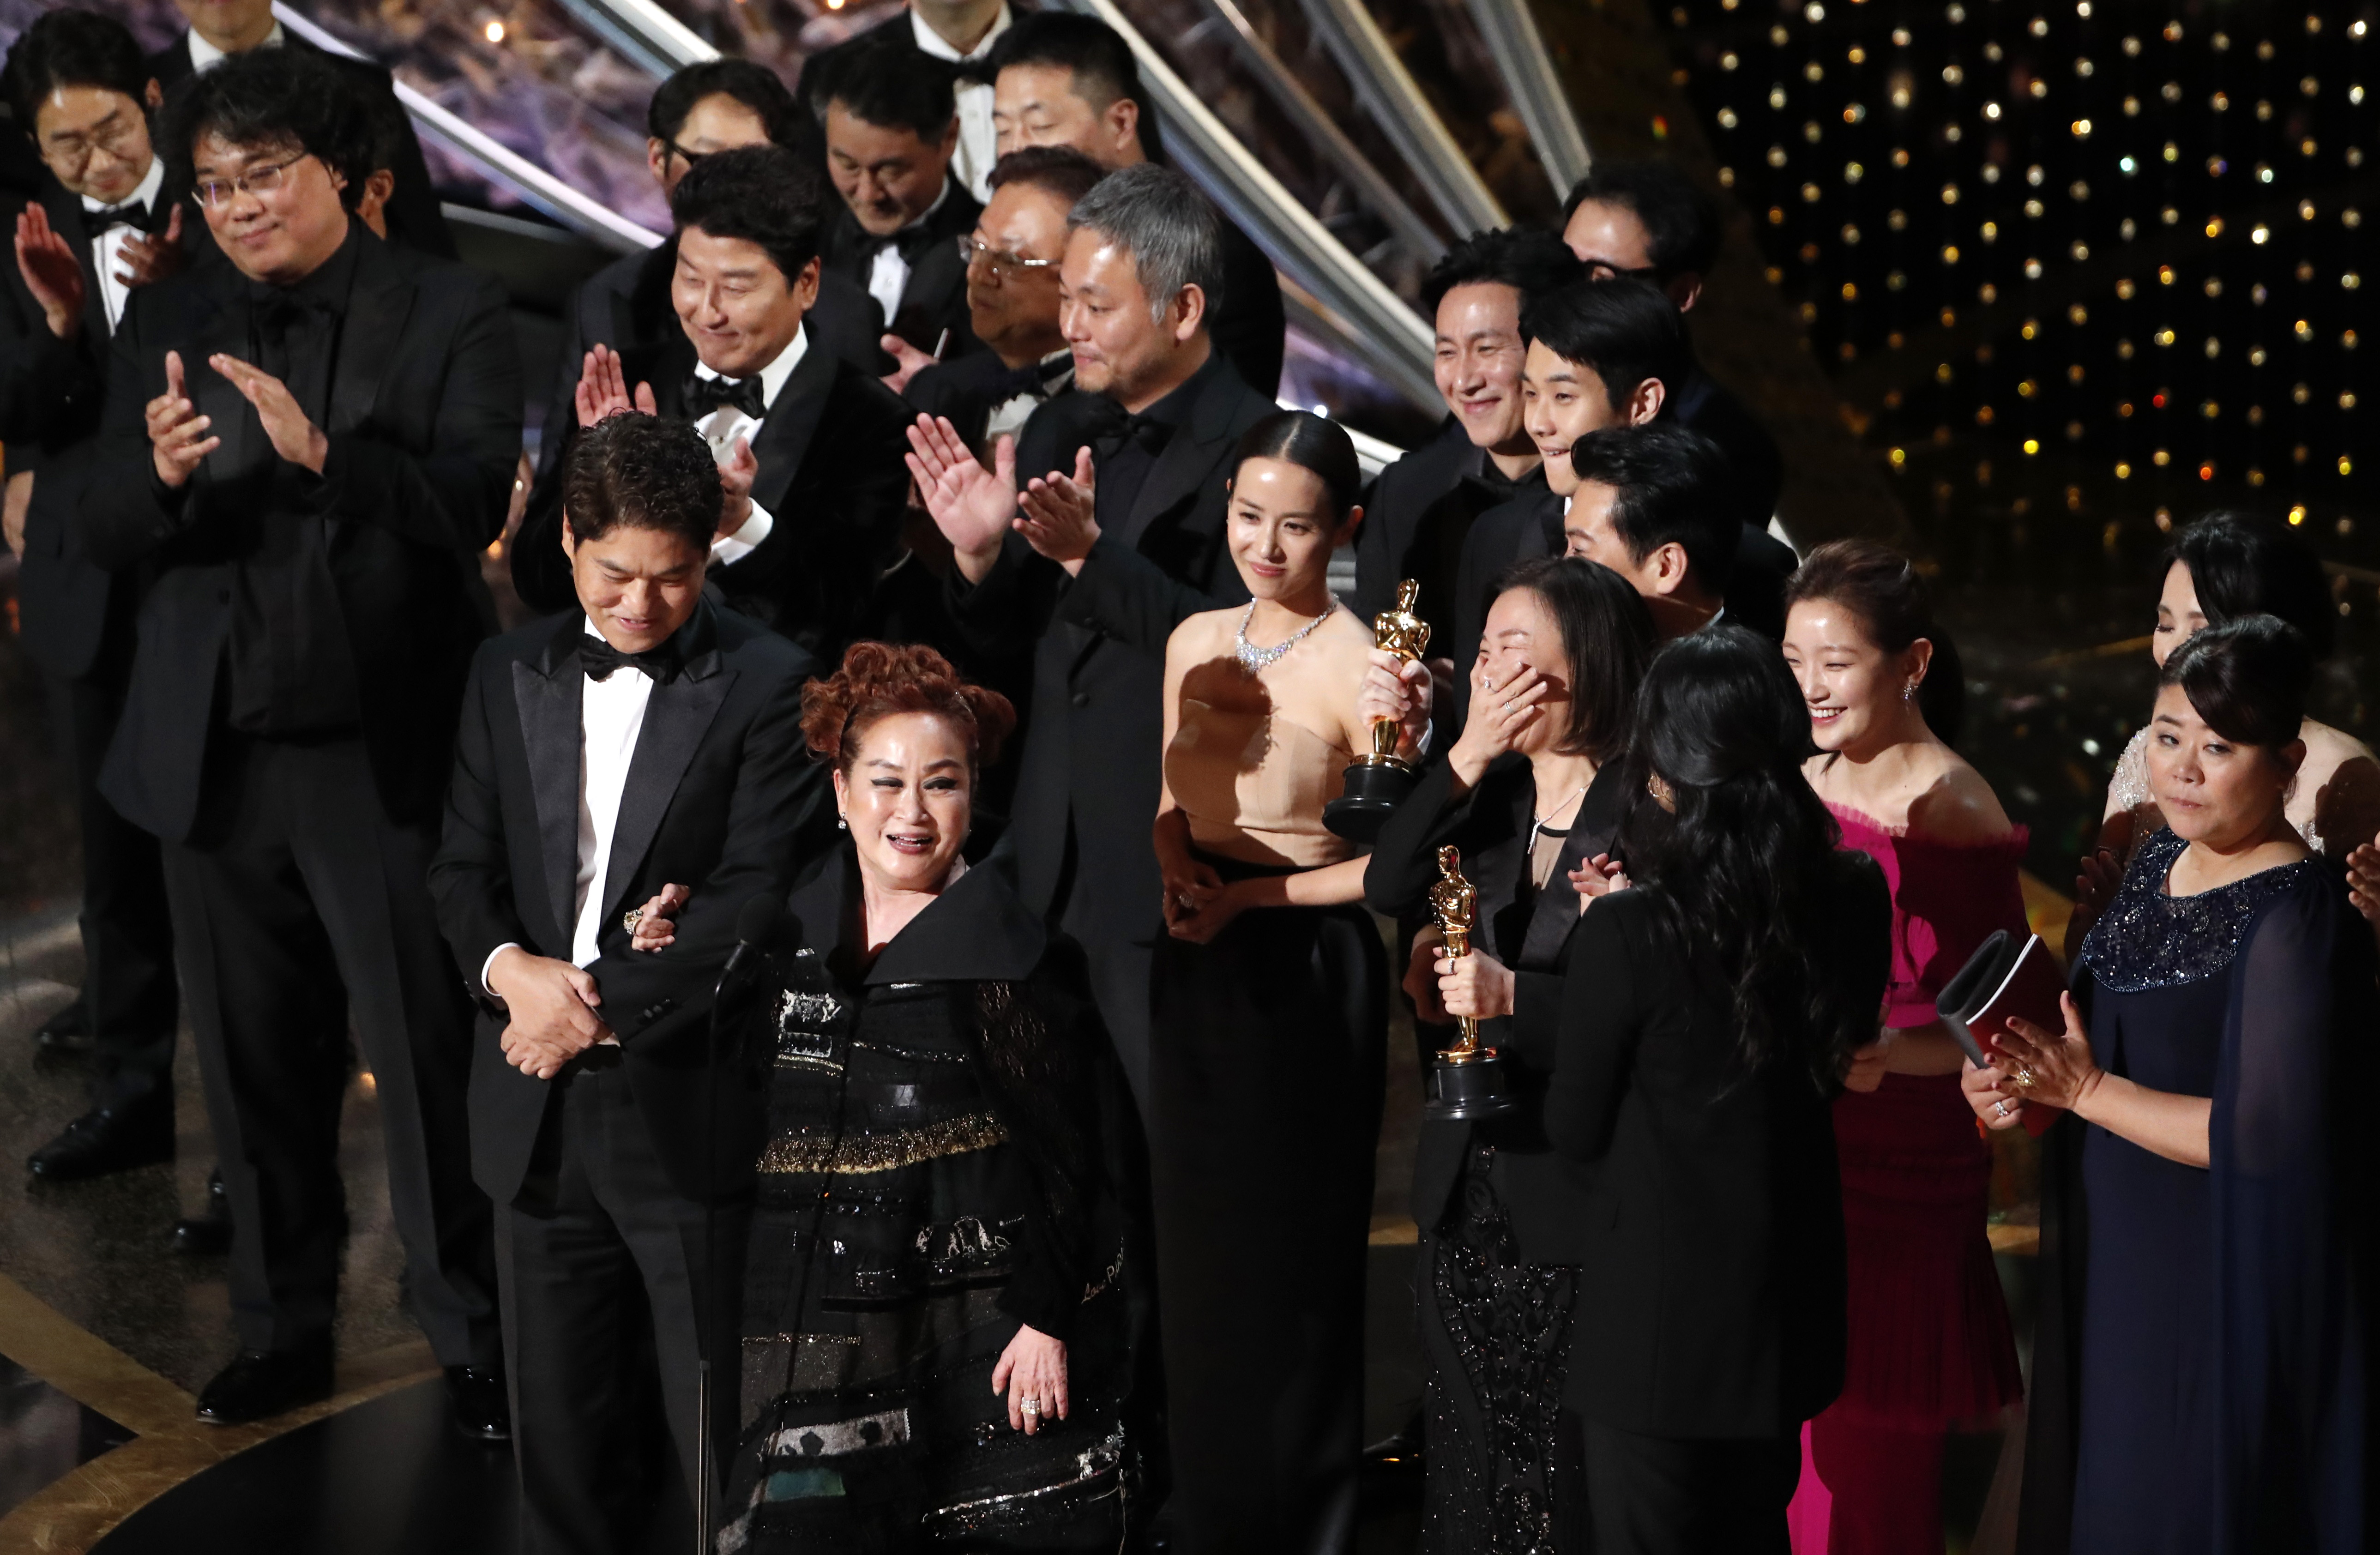 """Miky Lee, Kwak Sin Ae and Bong Joon Ho react after winning the Oscar for Best Picture for """"Parasite"""" at the 92nd Academy Awards in Hollywood, Los Angeles, California, U.S., February 9, 2020. REUTERS/Mario Anzuoni"""